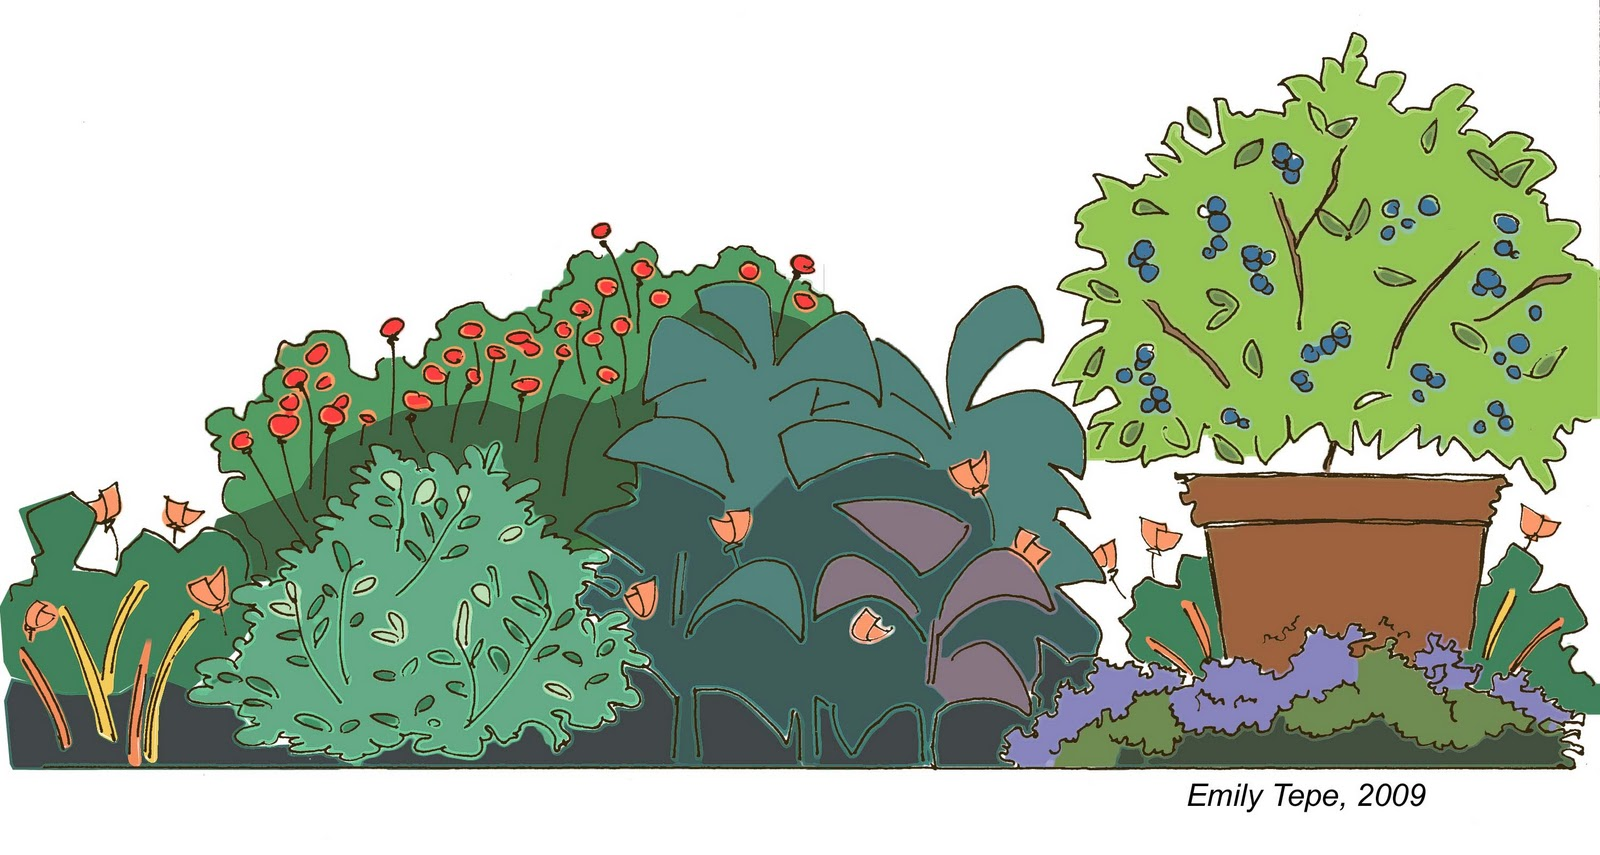 In Addition To Drawing Garden Plans Sketches Of Groups Plants Based On Average Plant Shapes And Heights Can Help Visualize How The Will Look